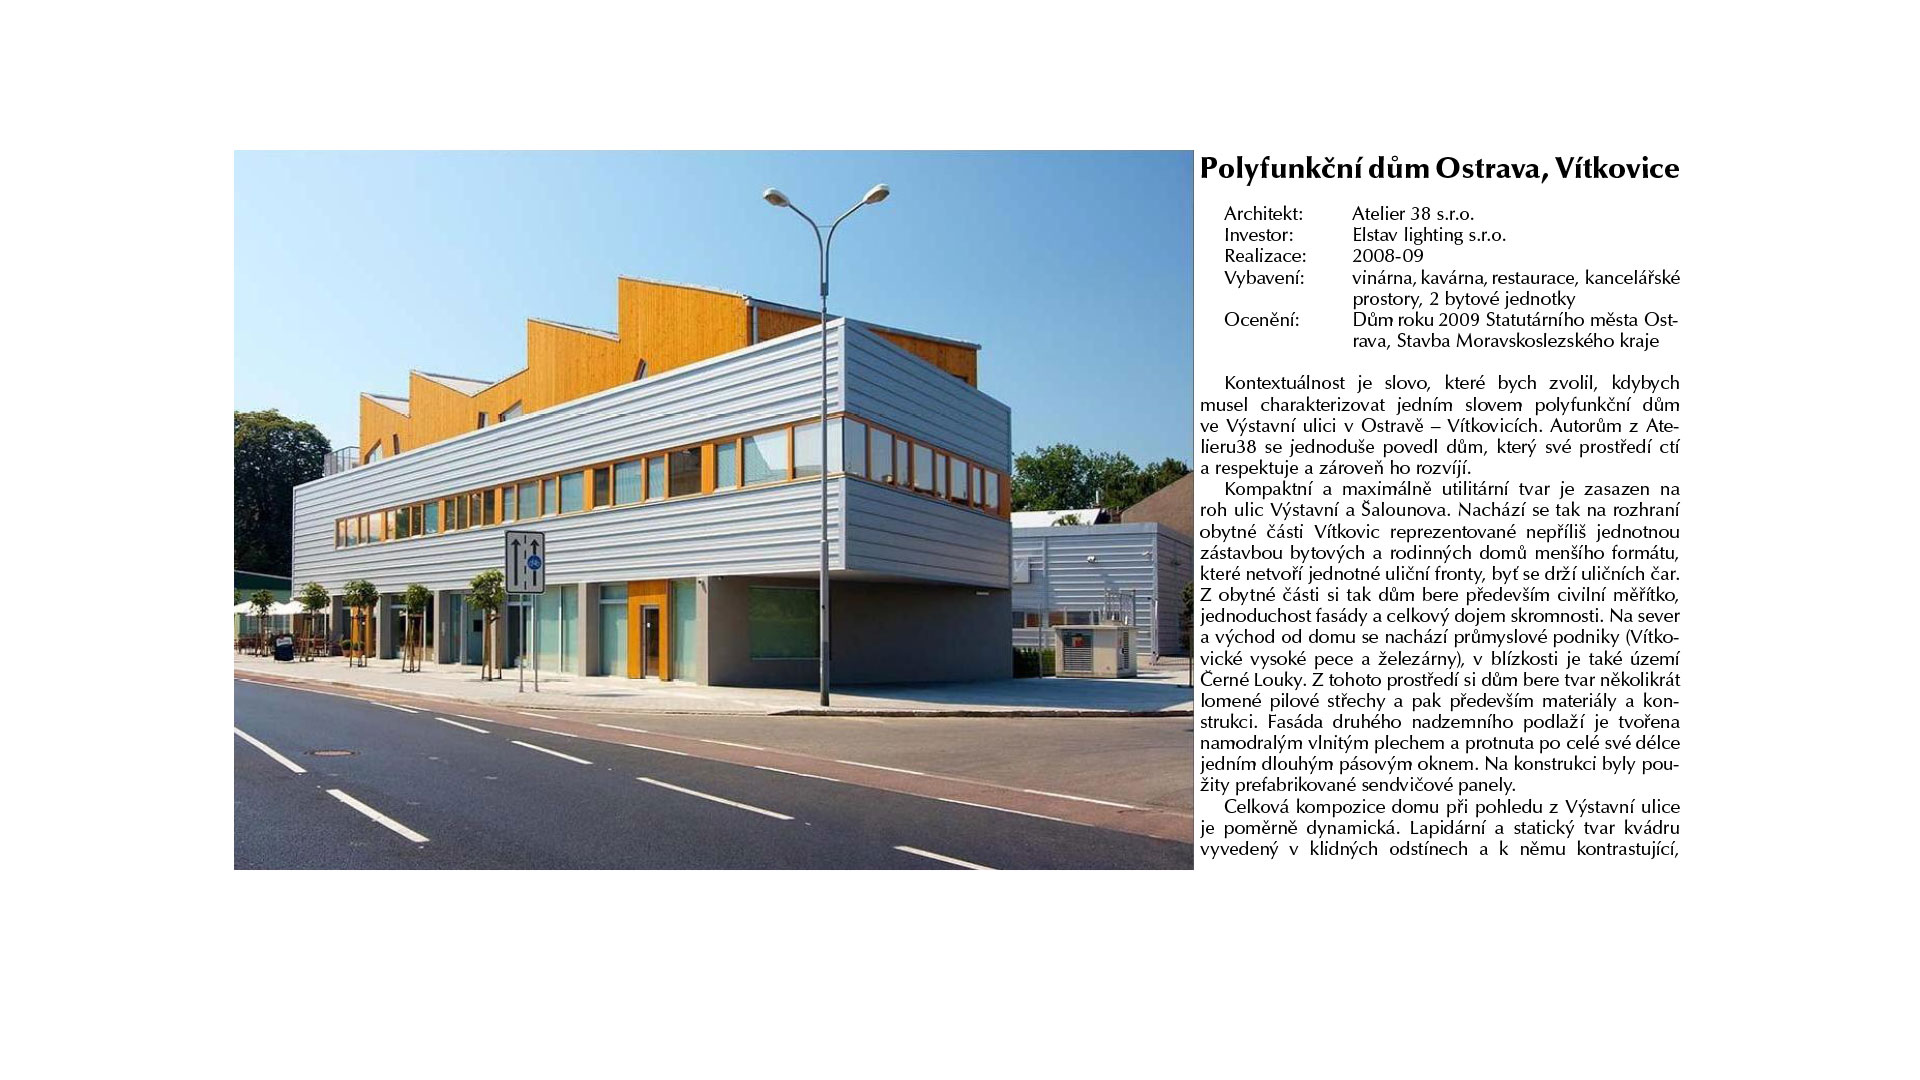 Contemporary Czech Architecture page 76